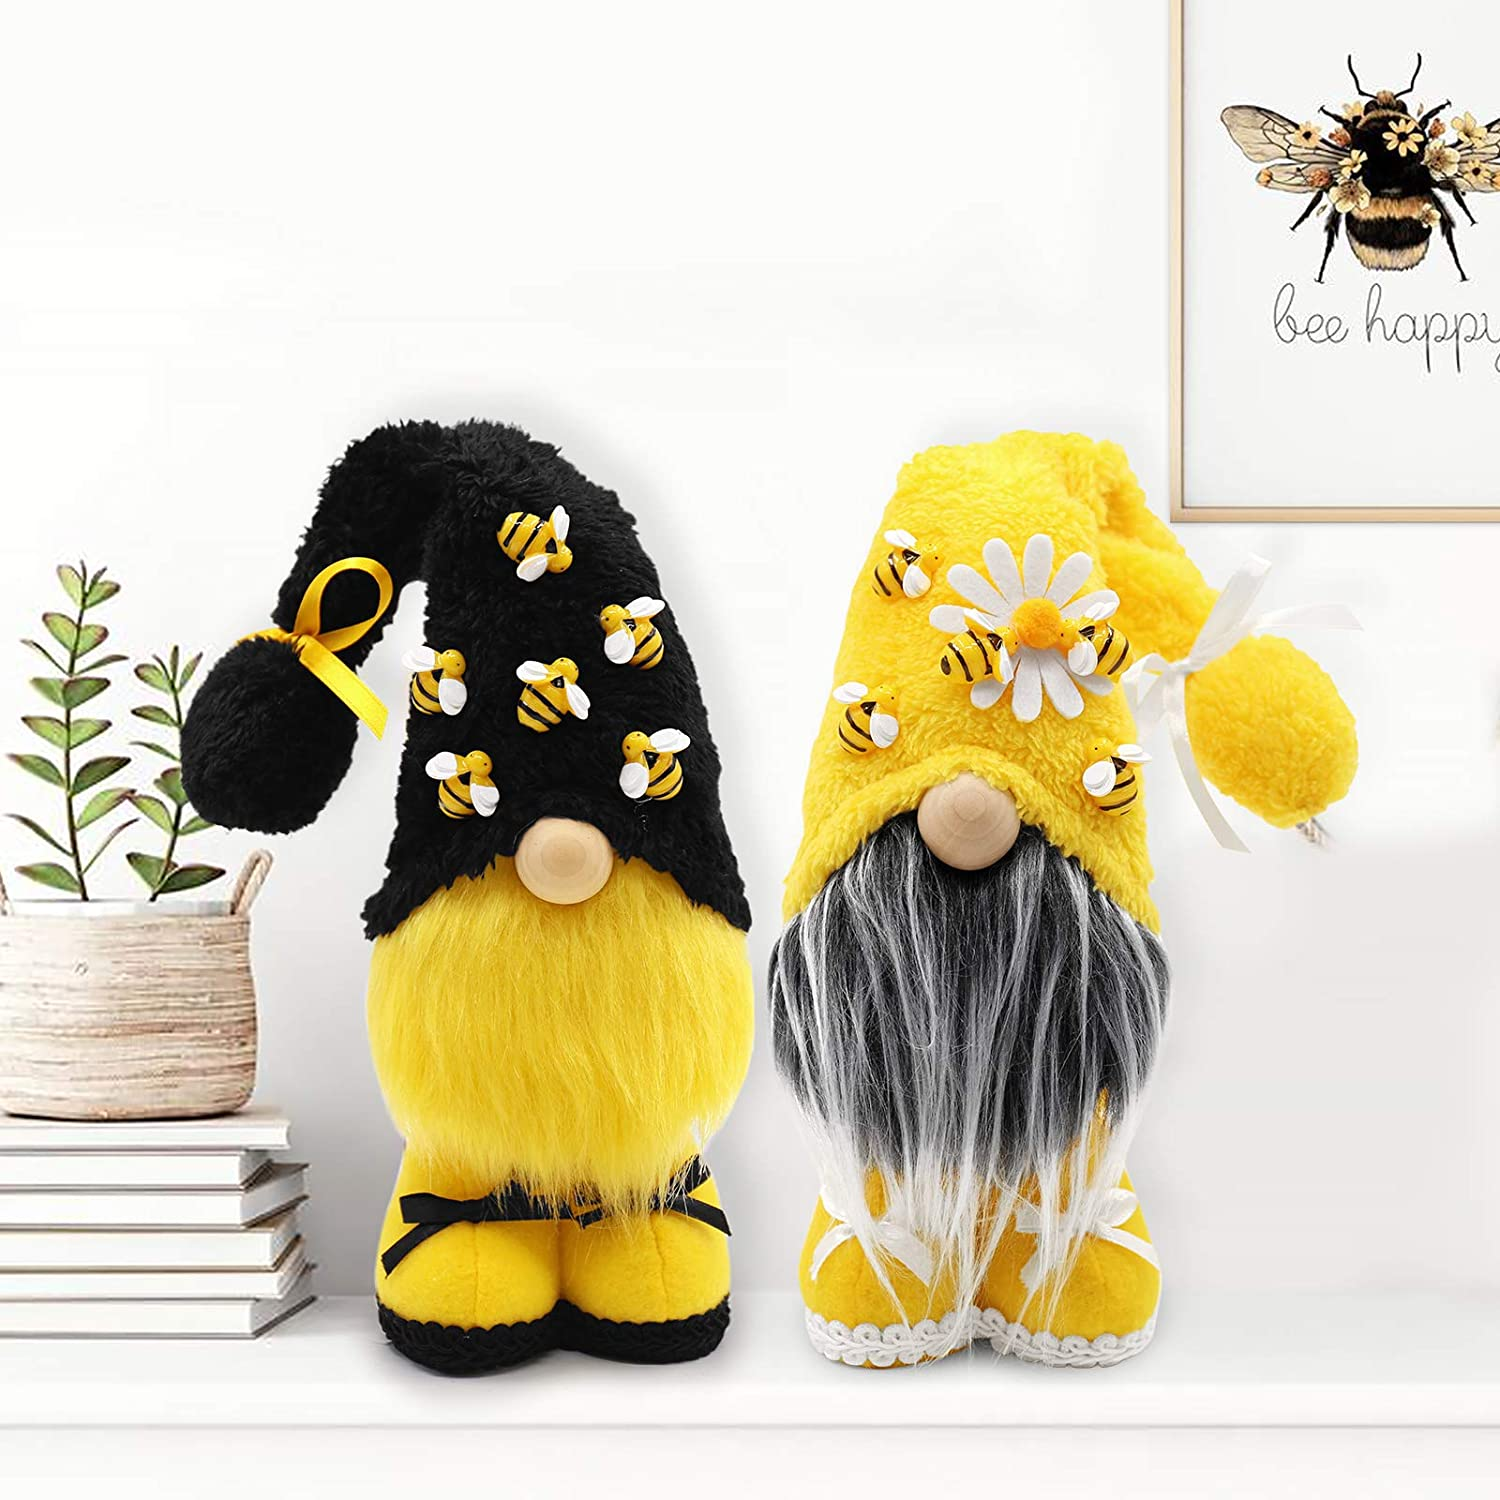 Bumble Bee Gnomes Slouchy Hat Yellow & Black Scandinavian Tomte Nisse Swedish Honey Bee Elf Home Farmhouse Kitchen Plush Collection Bee Shelf Tiered Tray Summertime Spring Decorations, Set of 2